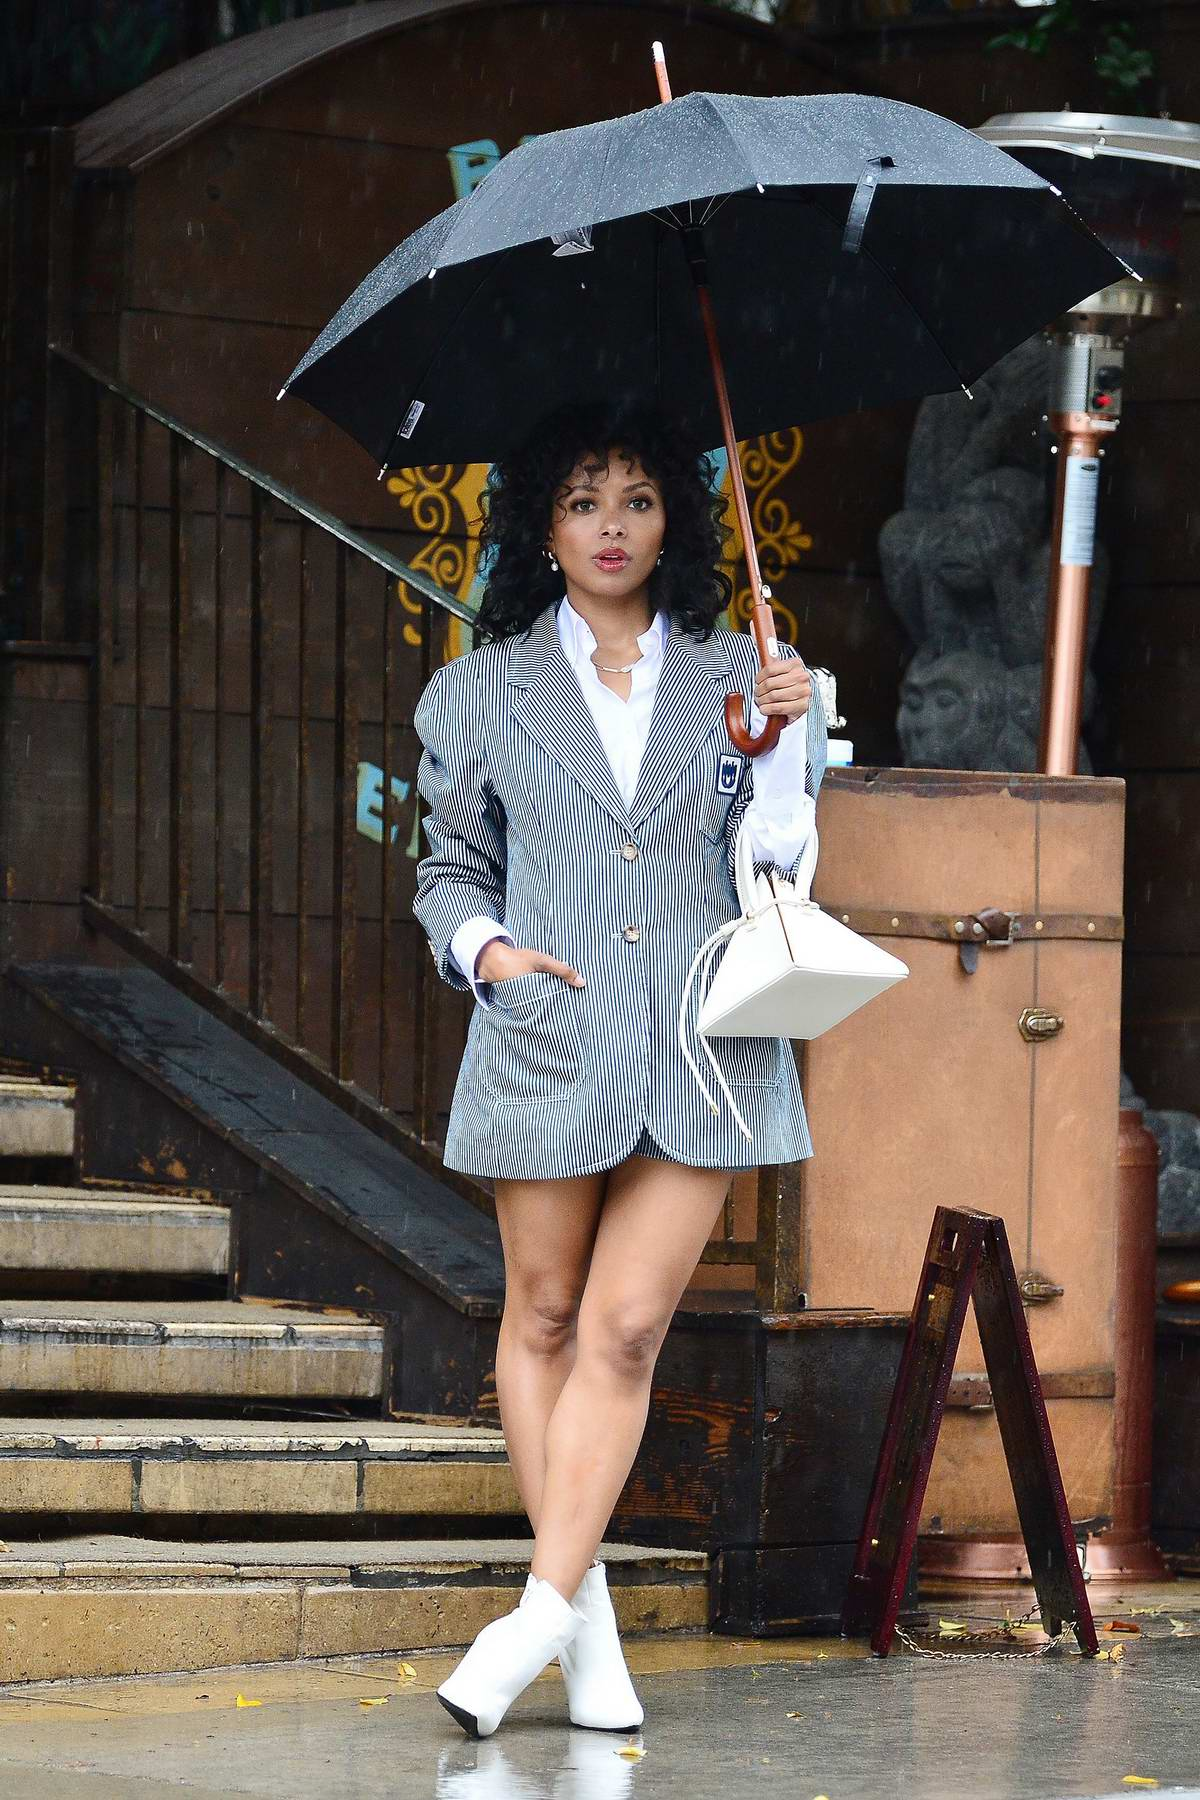 Kat Graham puts on a leggy display while leaving Petit Ermitage hotel in the rain in West Hollywood, California